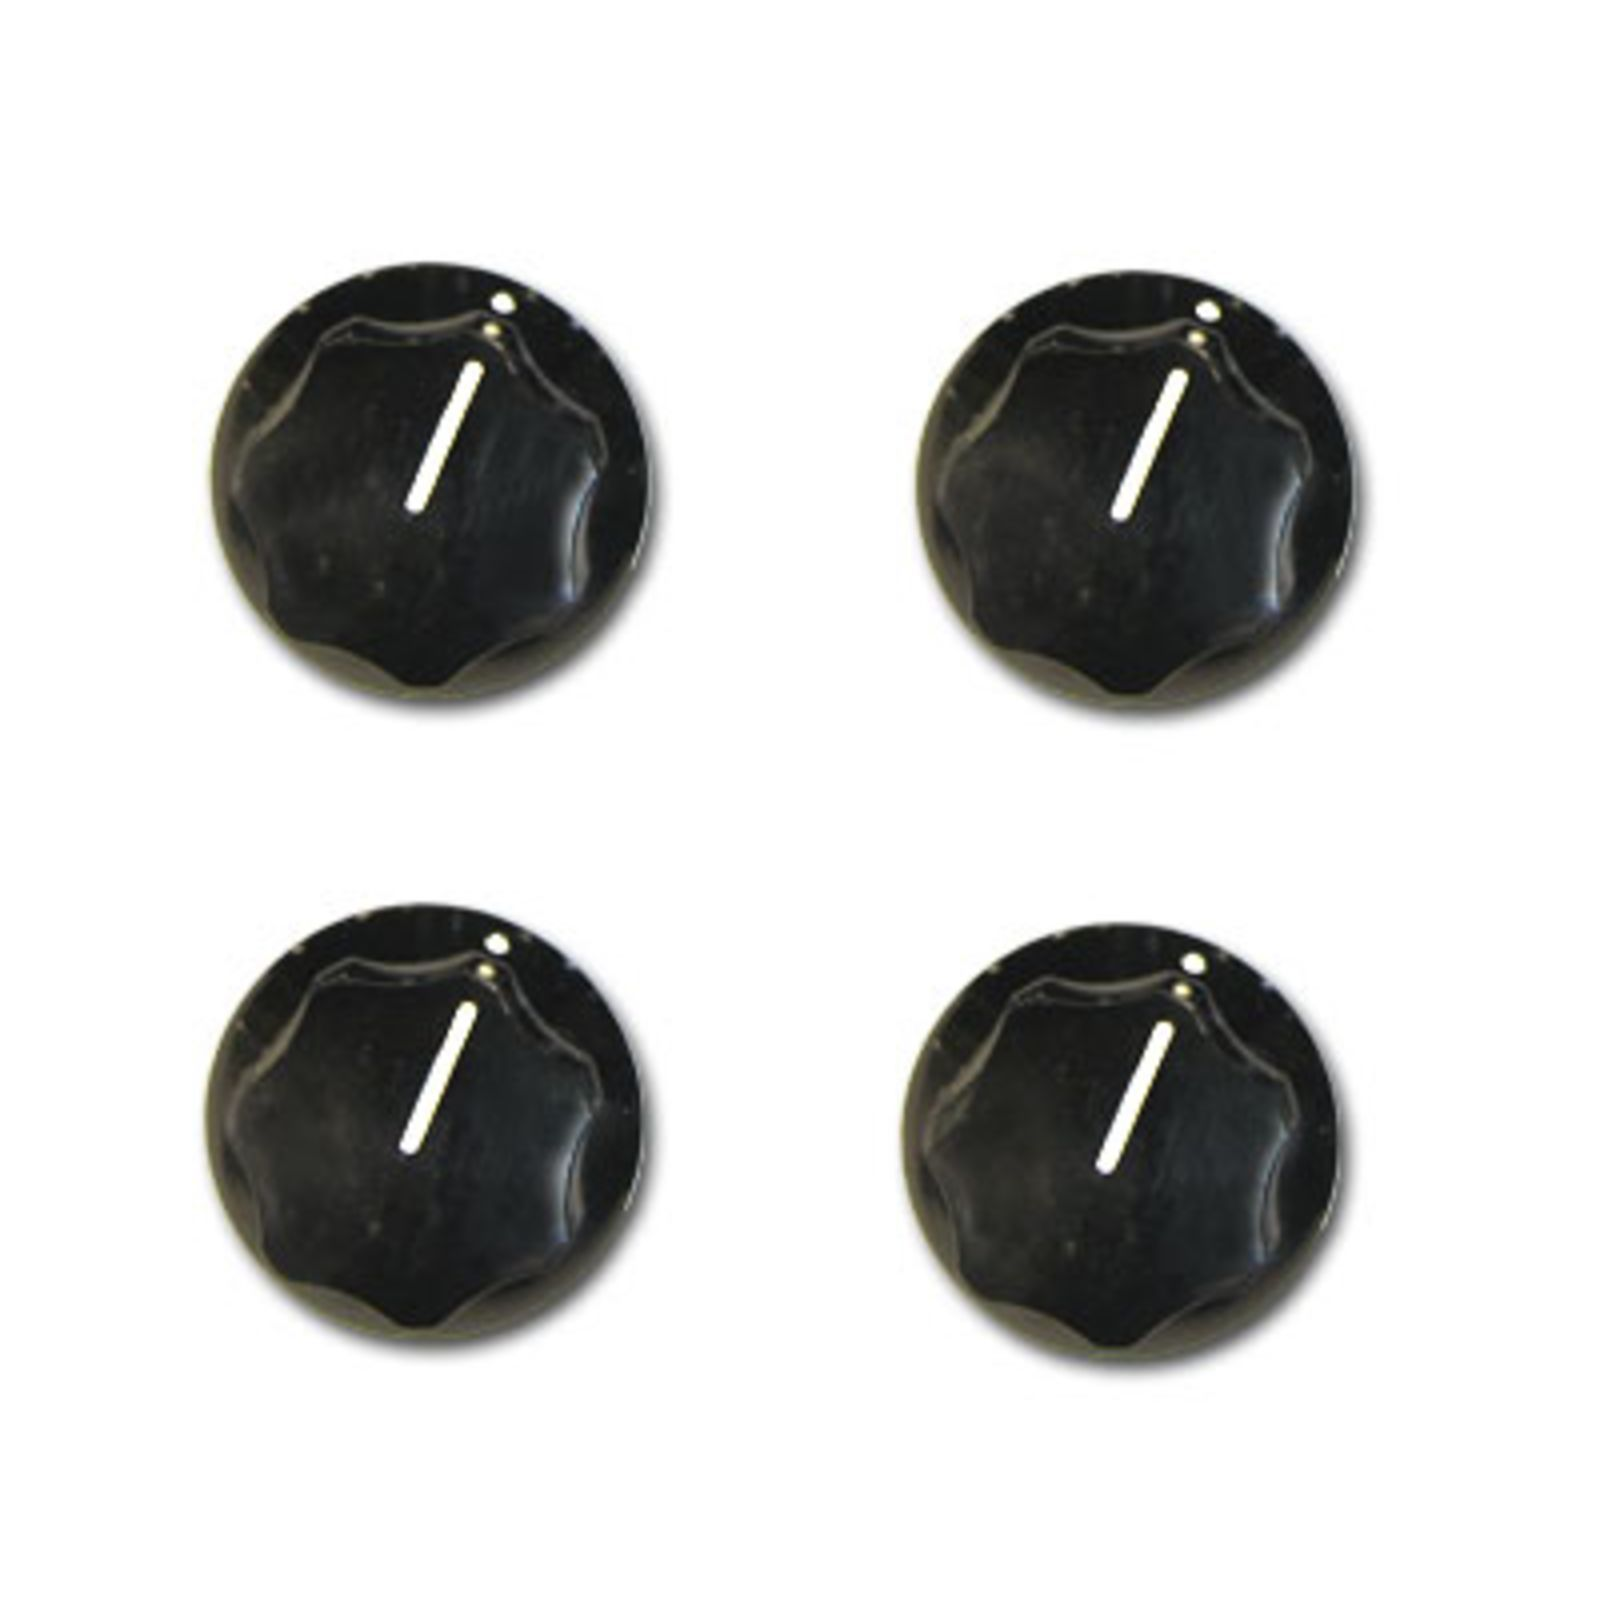 Rickenbacker Knobs Vintage Bass Black Set of 4 Produktbillede